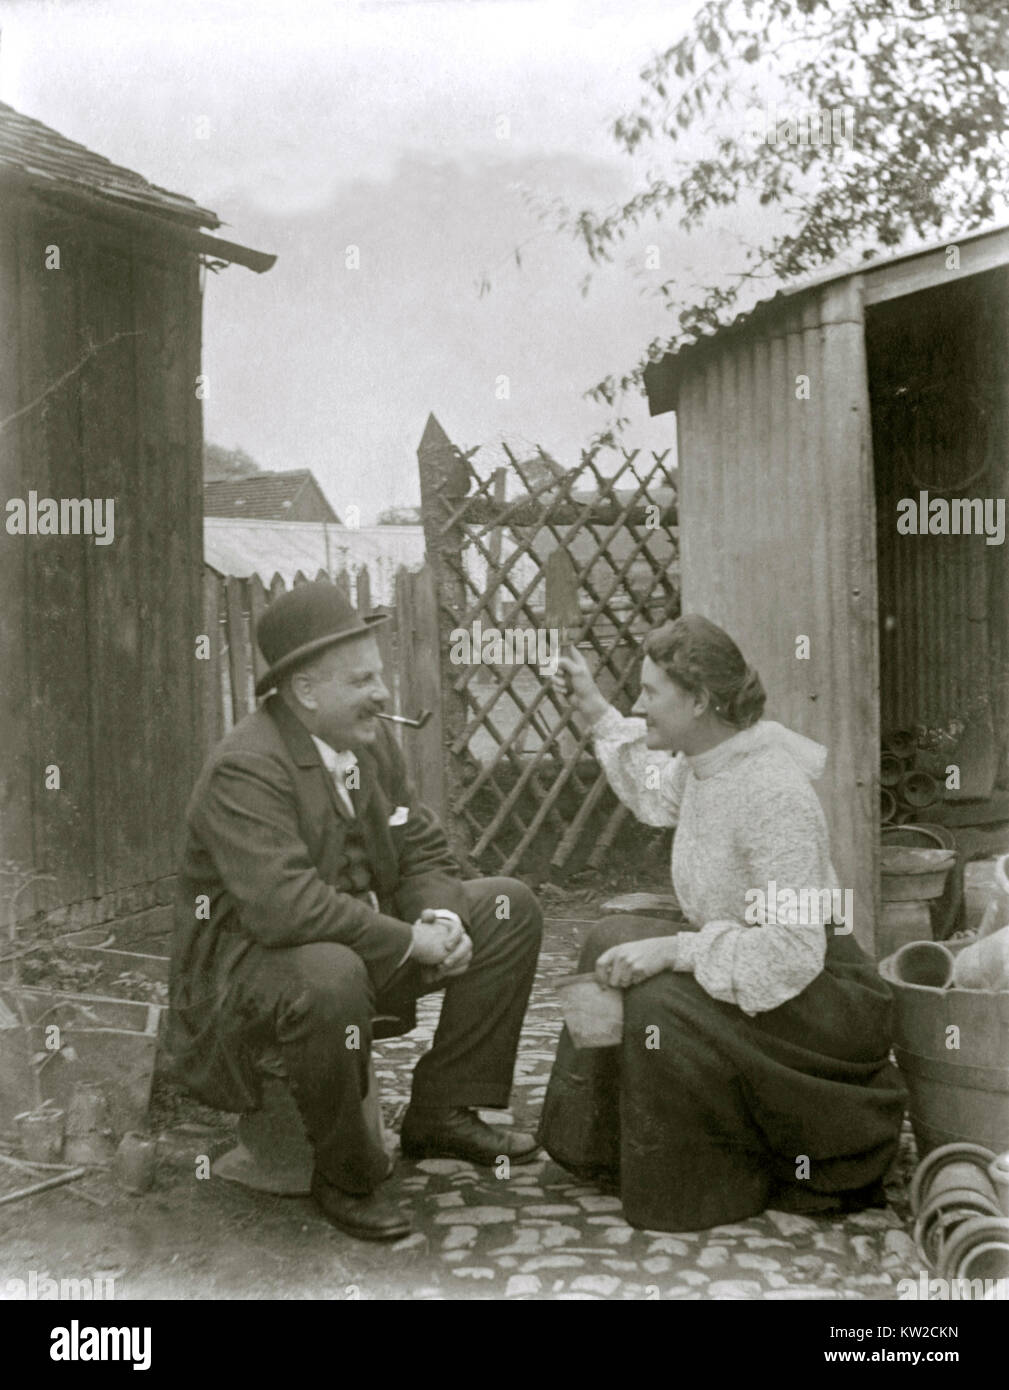 Victorian woman and man share a joke behind the potting shed (c. 1900) - however she seems to threatening him with - Stock Image